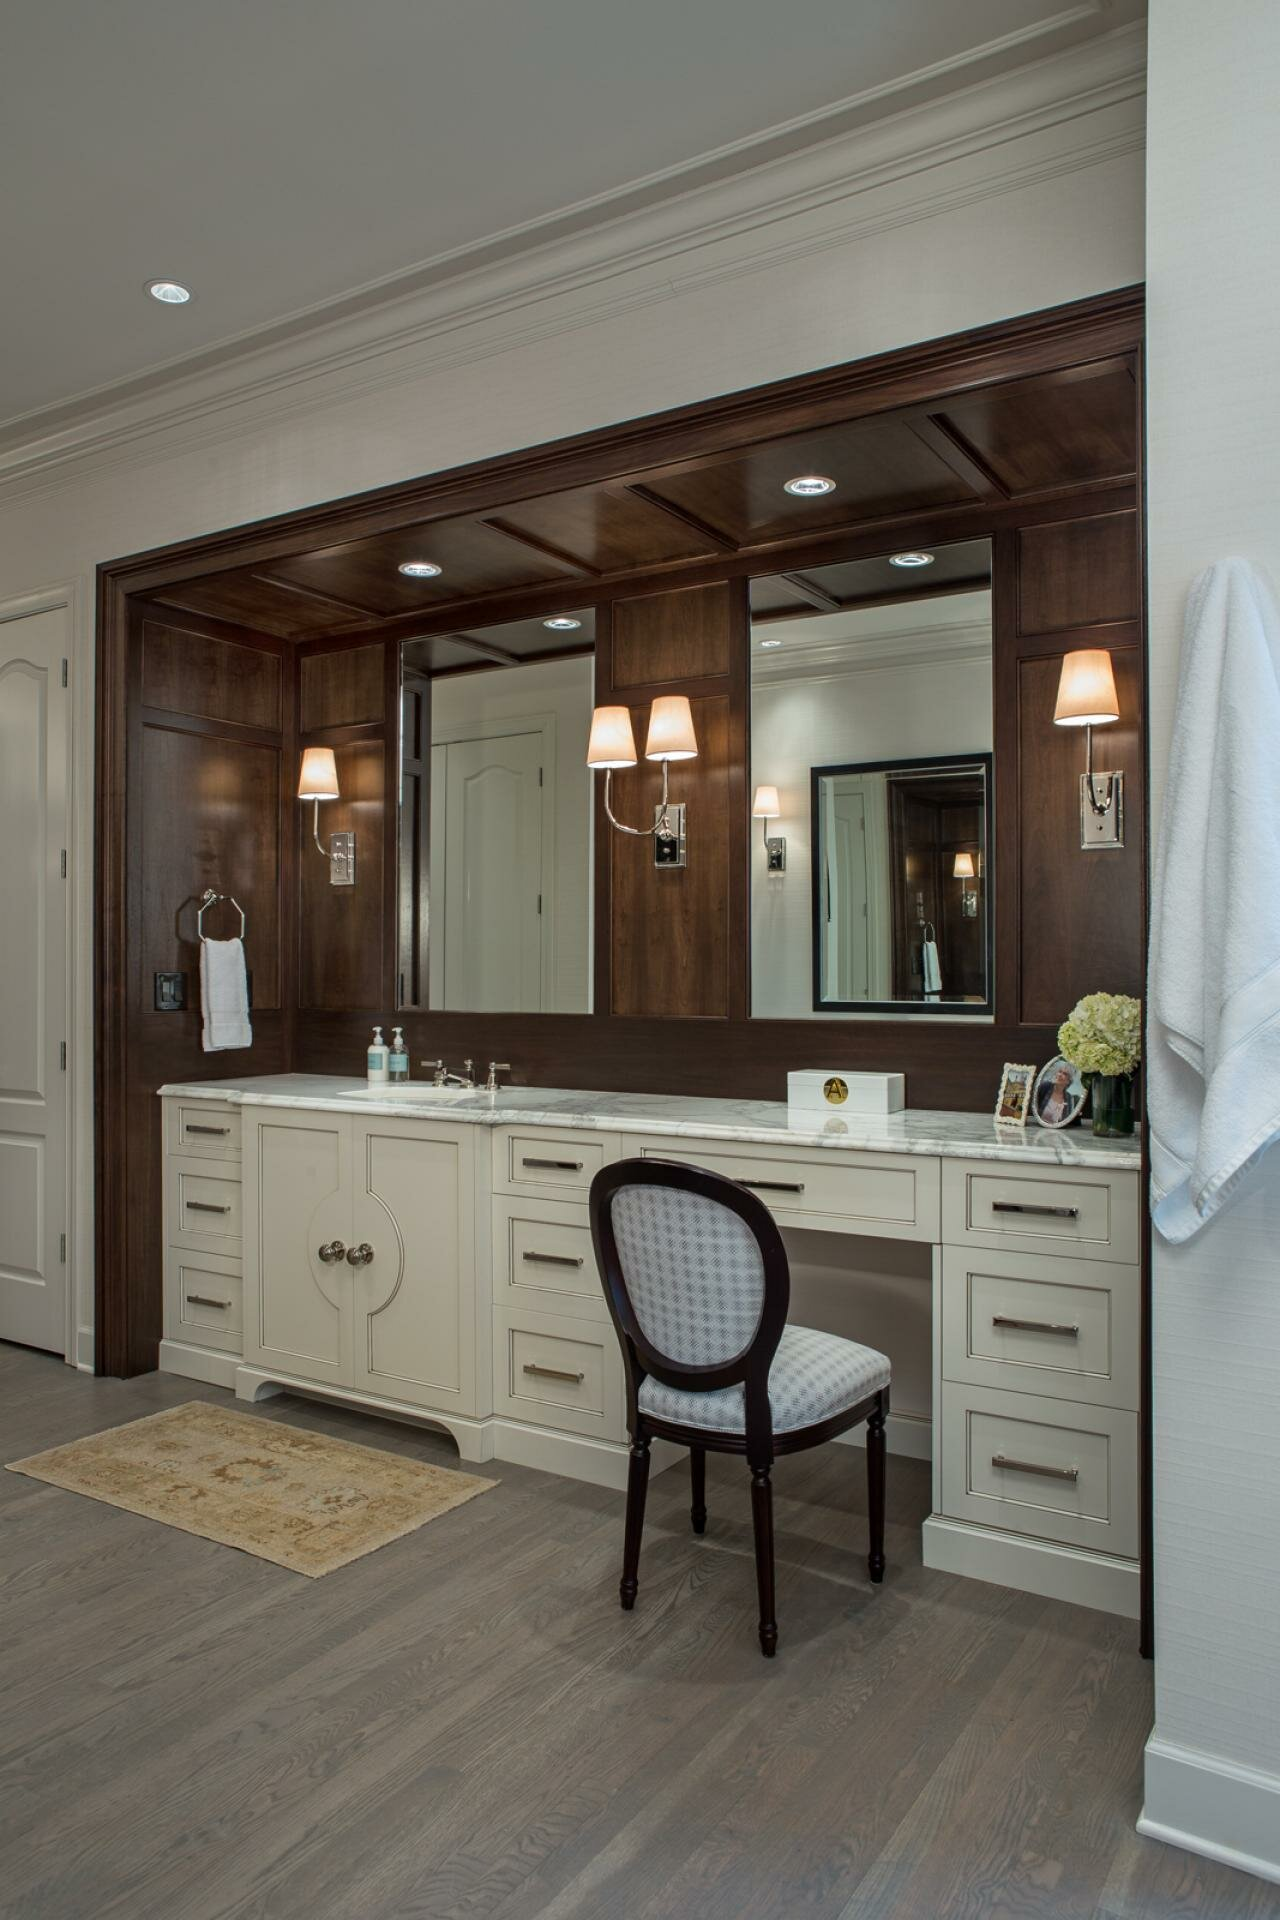 Potterybarn Bathroom | Small Bedroom Vanity | Pottery Barn Vanity